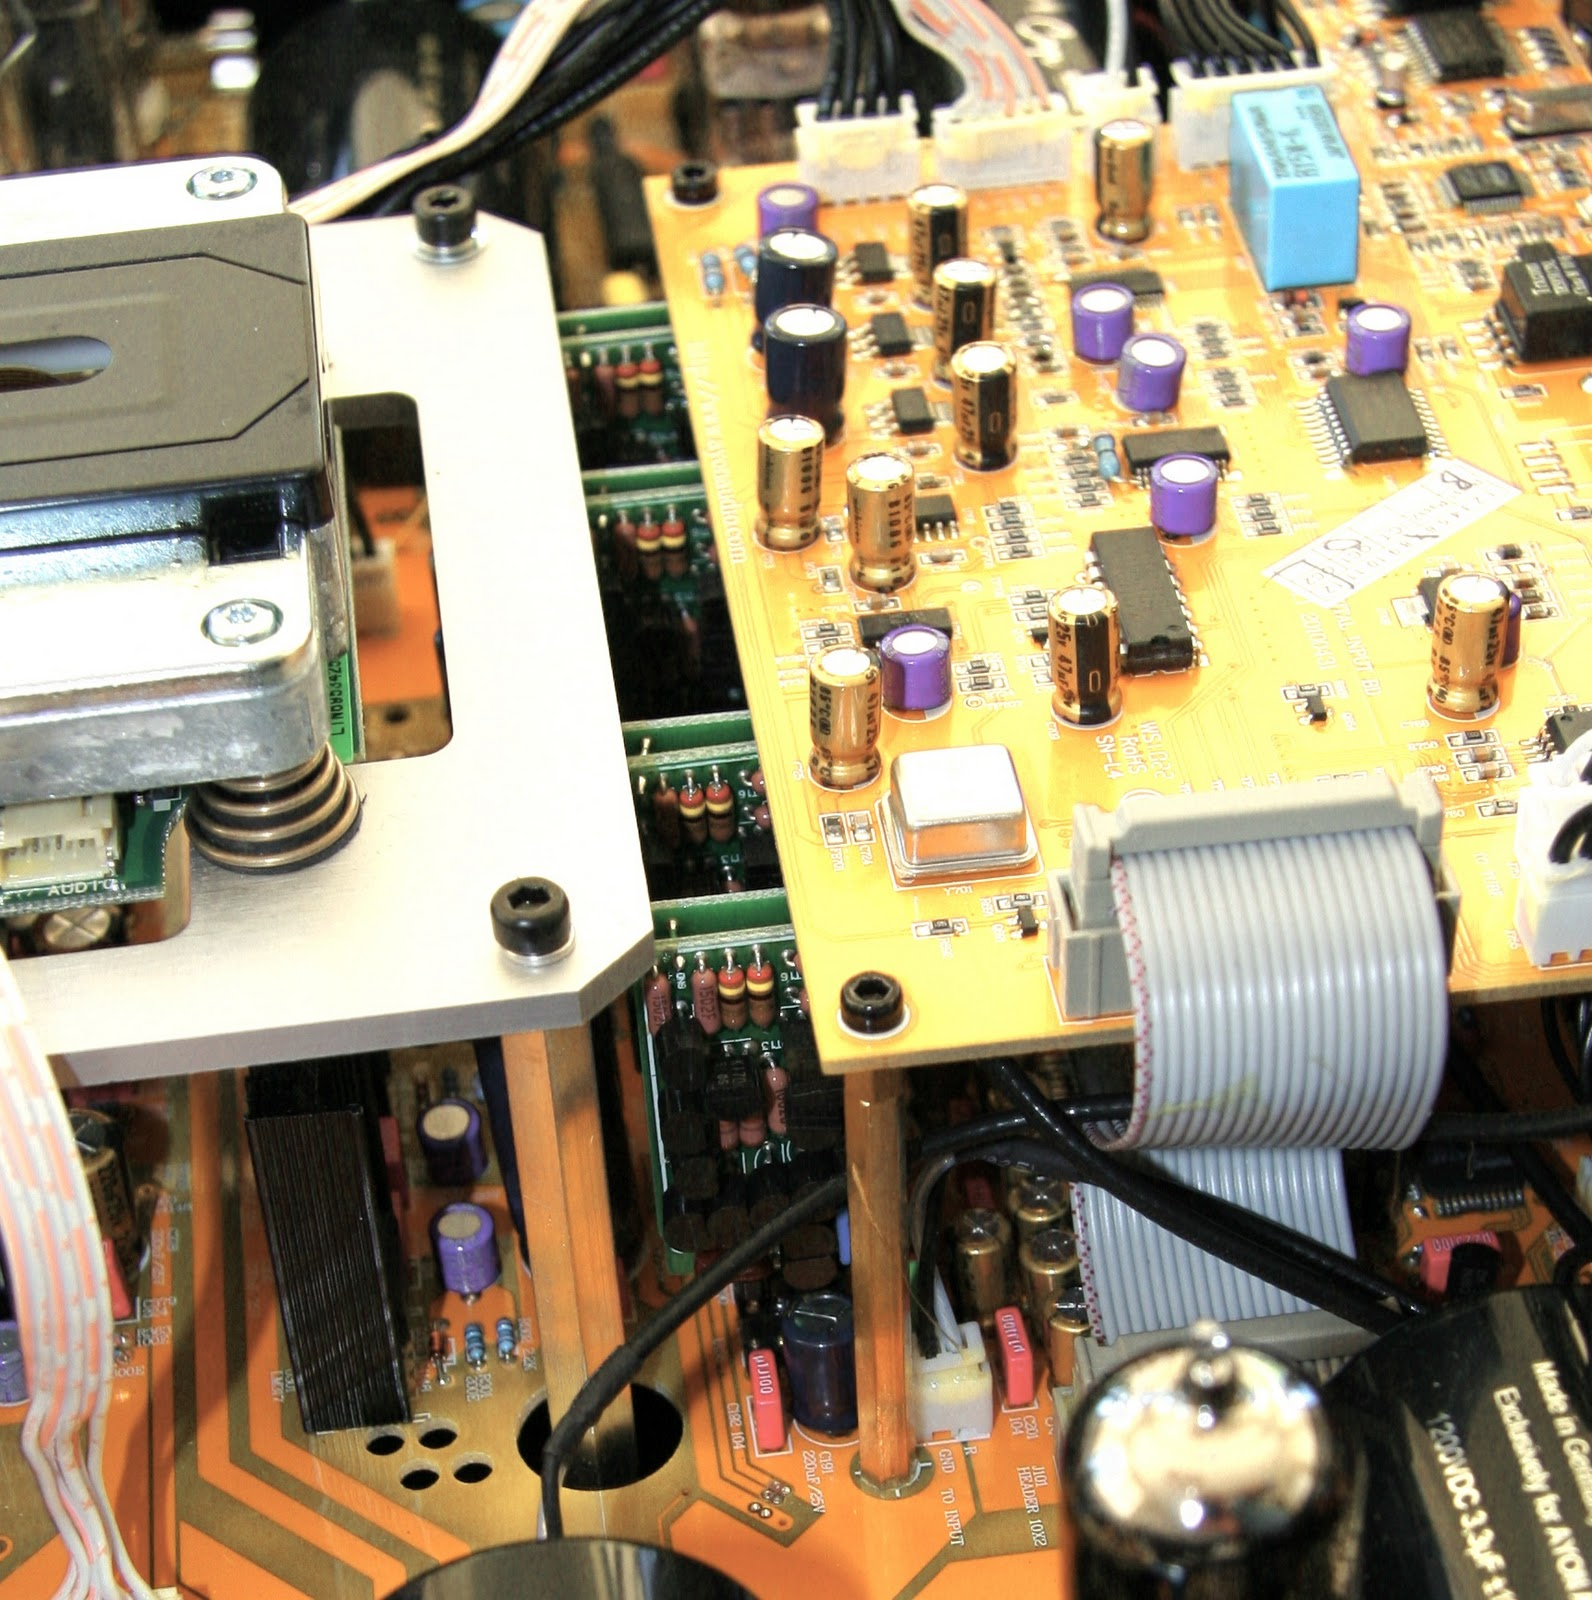 Upgrading Op Amps In Audio Equipment Texas Instruments Lm358 Dual Amp Dip Ic Design Kit 1410 Nightfire Electronics